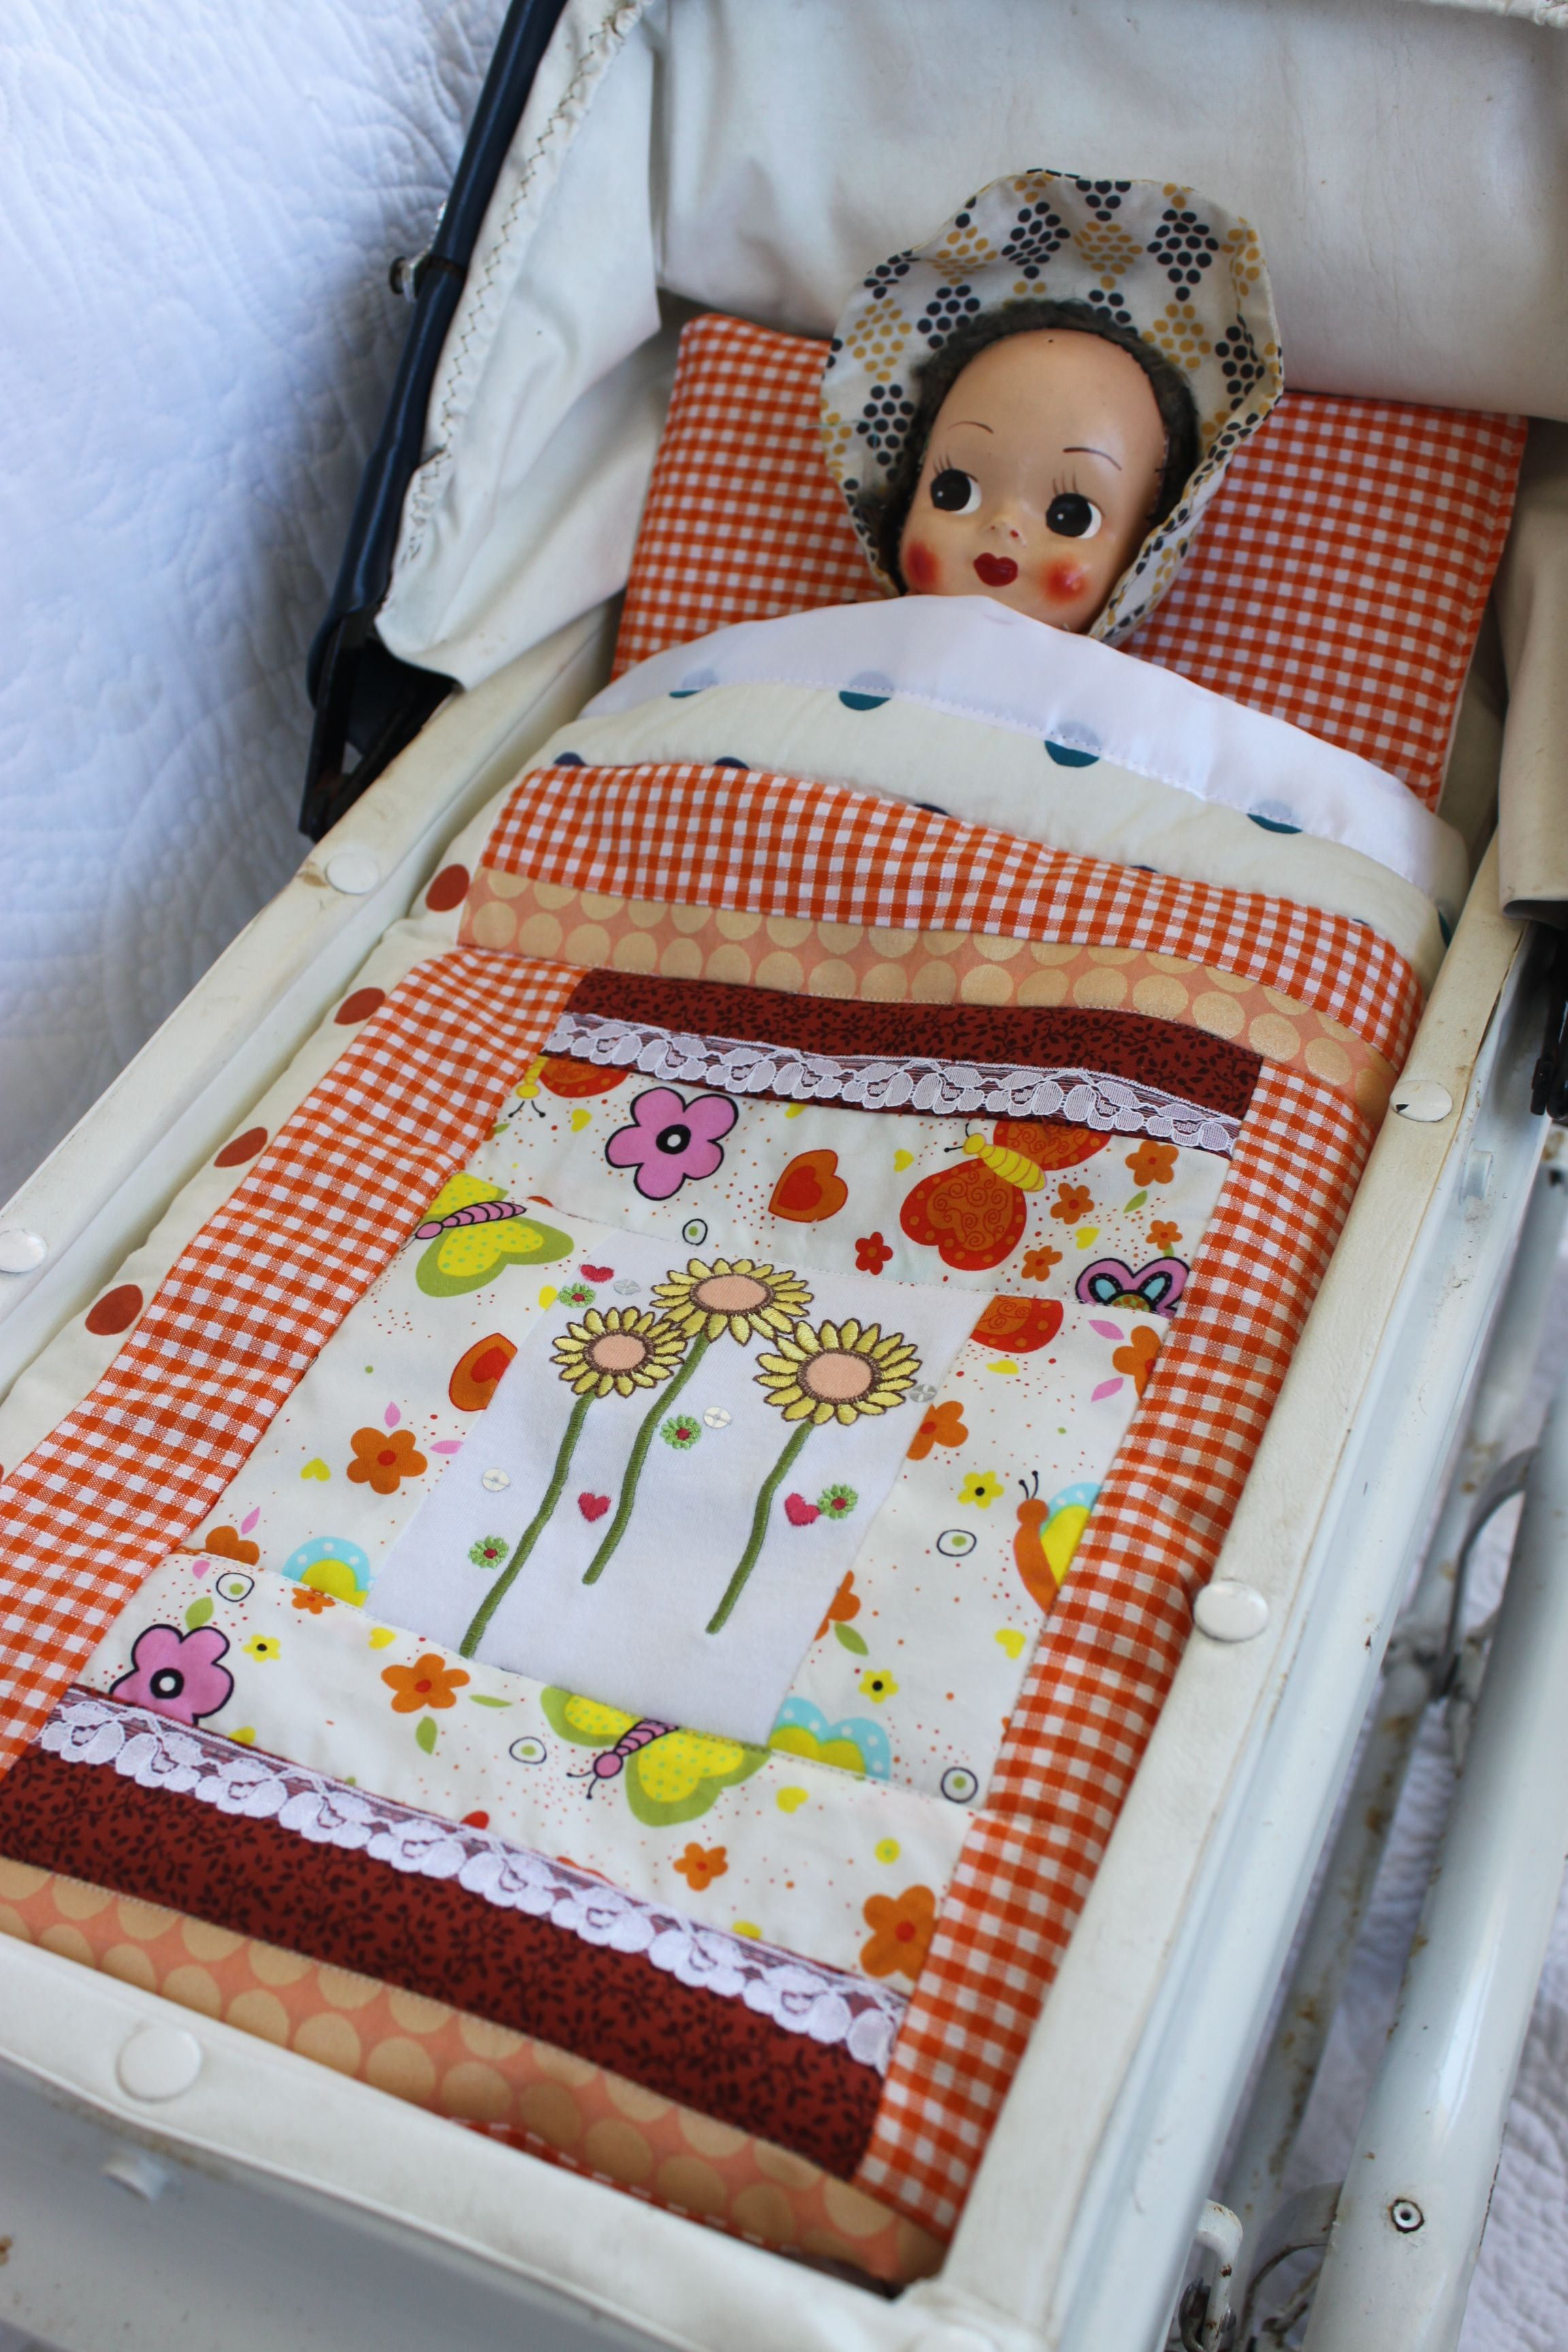 Dolls Bedding Dolls Quilt, Sheet and Pillow Set White sheet with ... : doll quilt size - Adamdwight.com